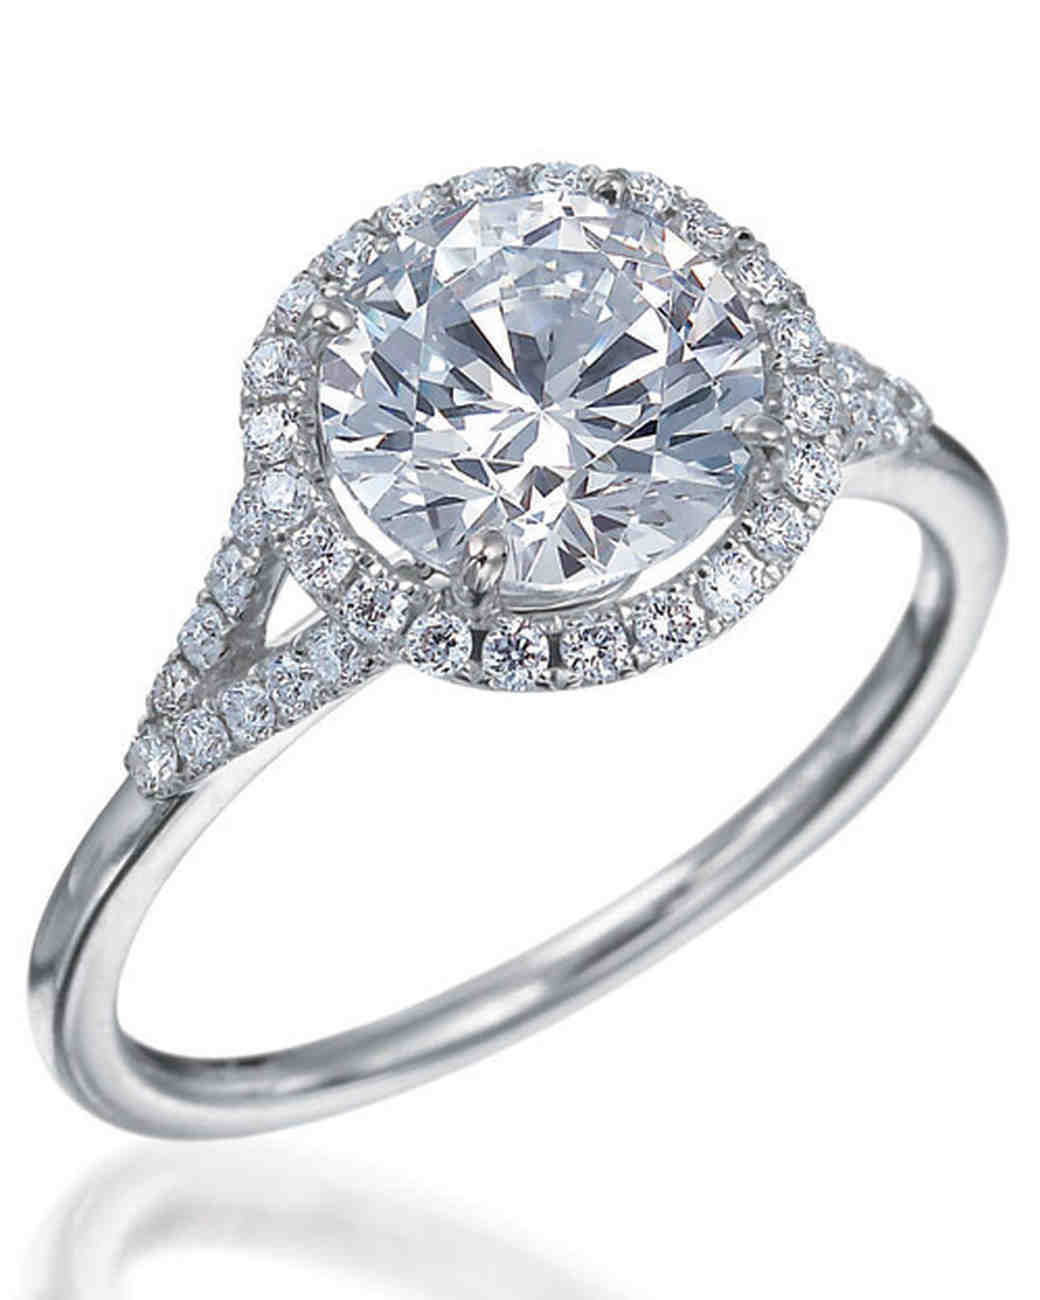 round cut diamond engagement rings martha stewart weddings - Flat Wedding Rings